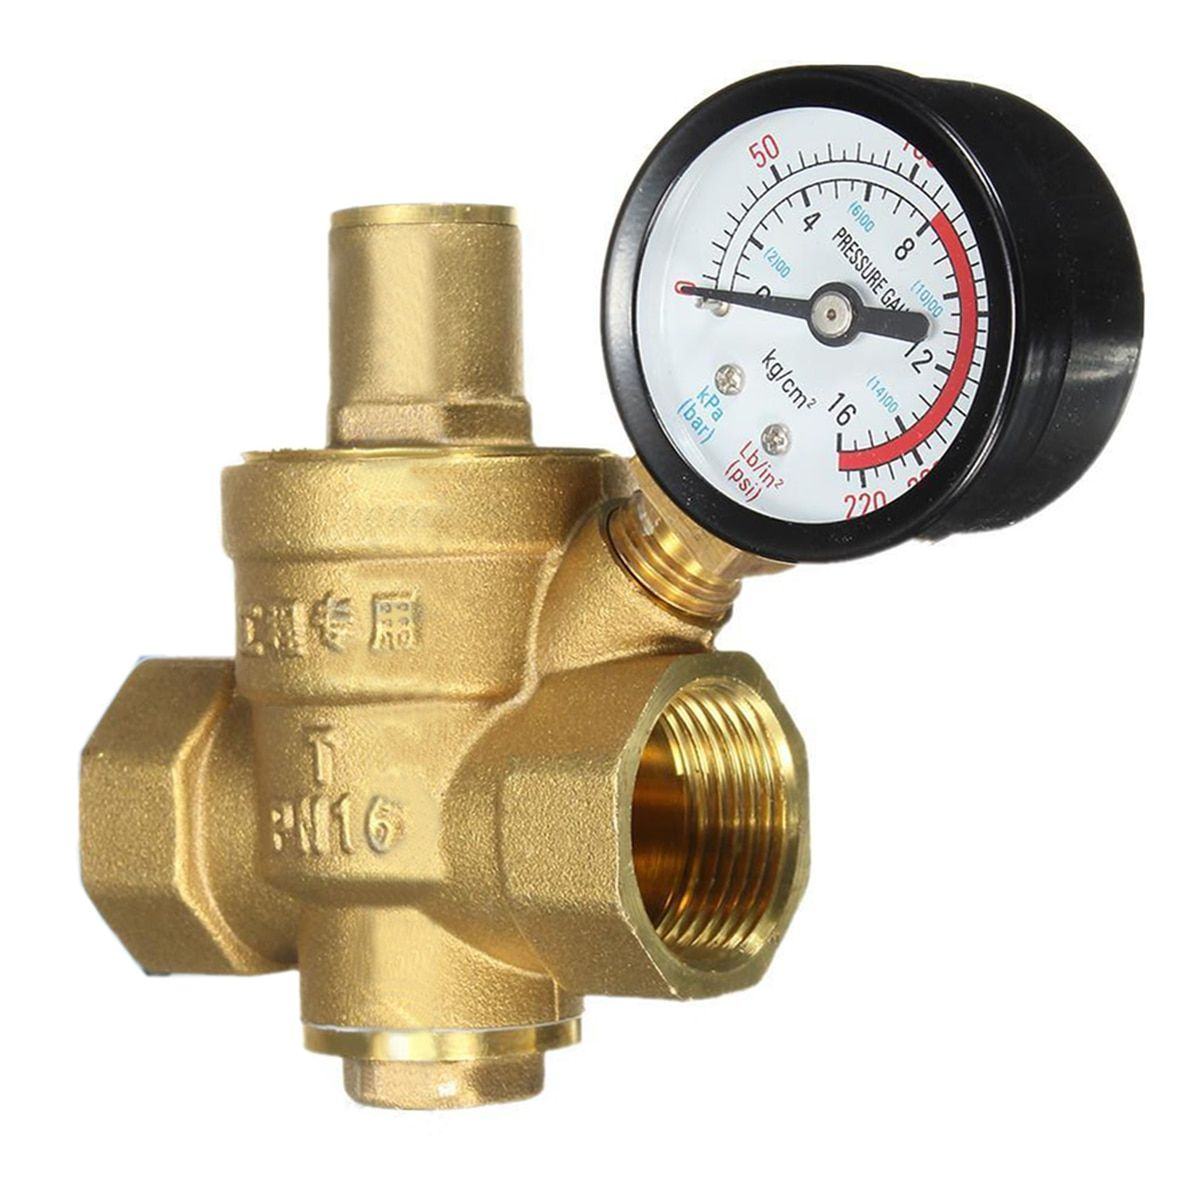 DN20 3/4 Brass Water Pressure Reducing Maintaining Valves <font><b>Regulator</b></font> Mayitr Adjustable Relief Valves With Gauge Meter 85*63mm